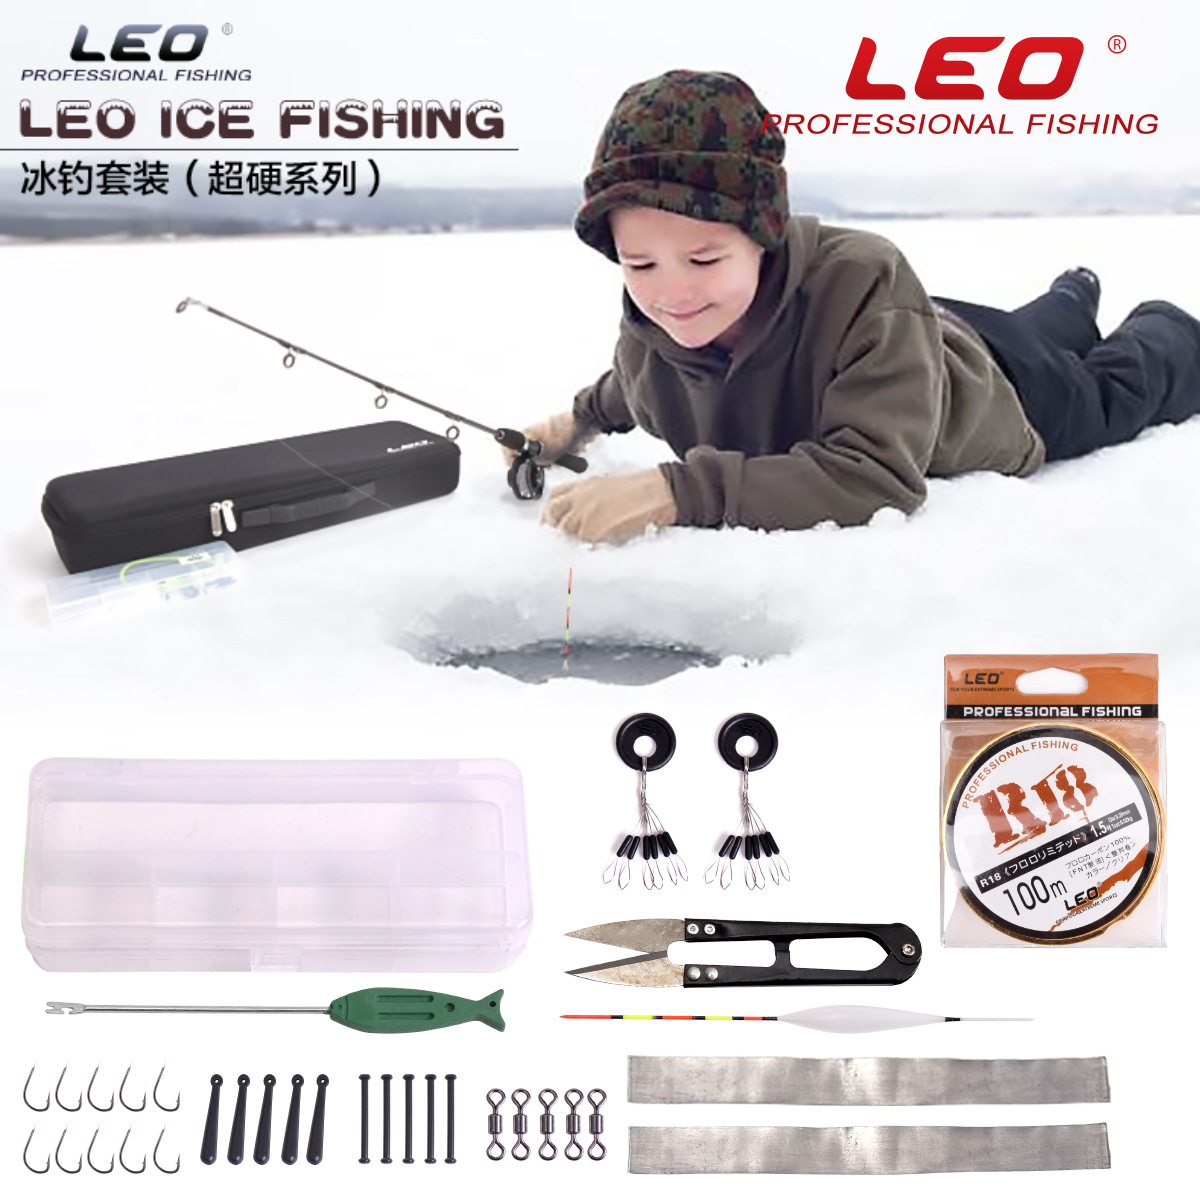 LEO 80cm black solid ice fishing rod set winter fishing rod fishing rod combination Free Shipping